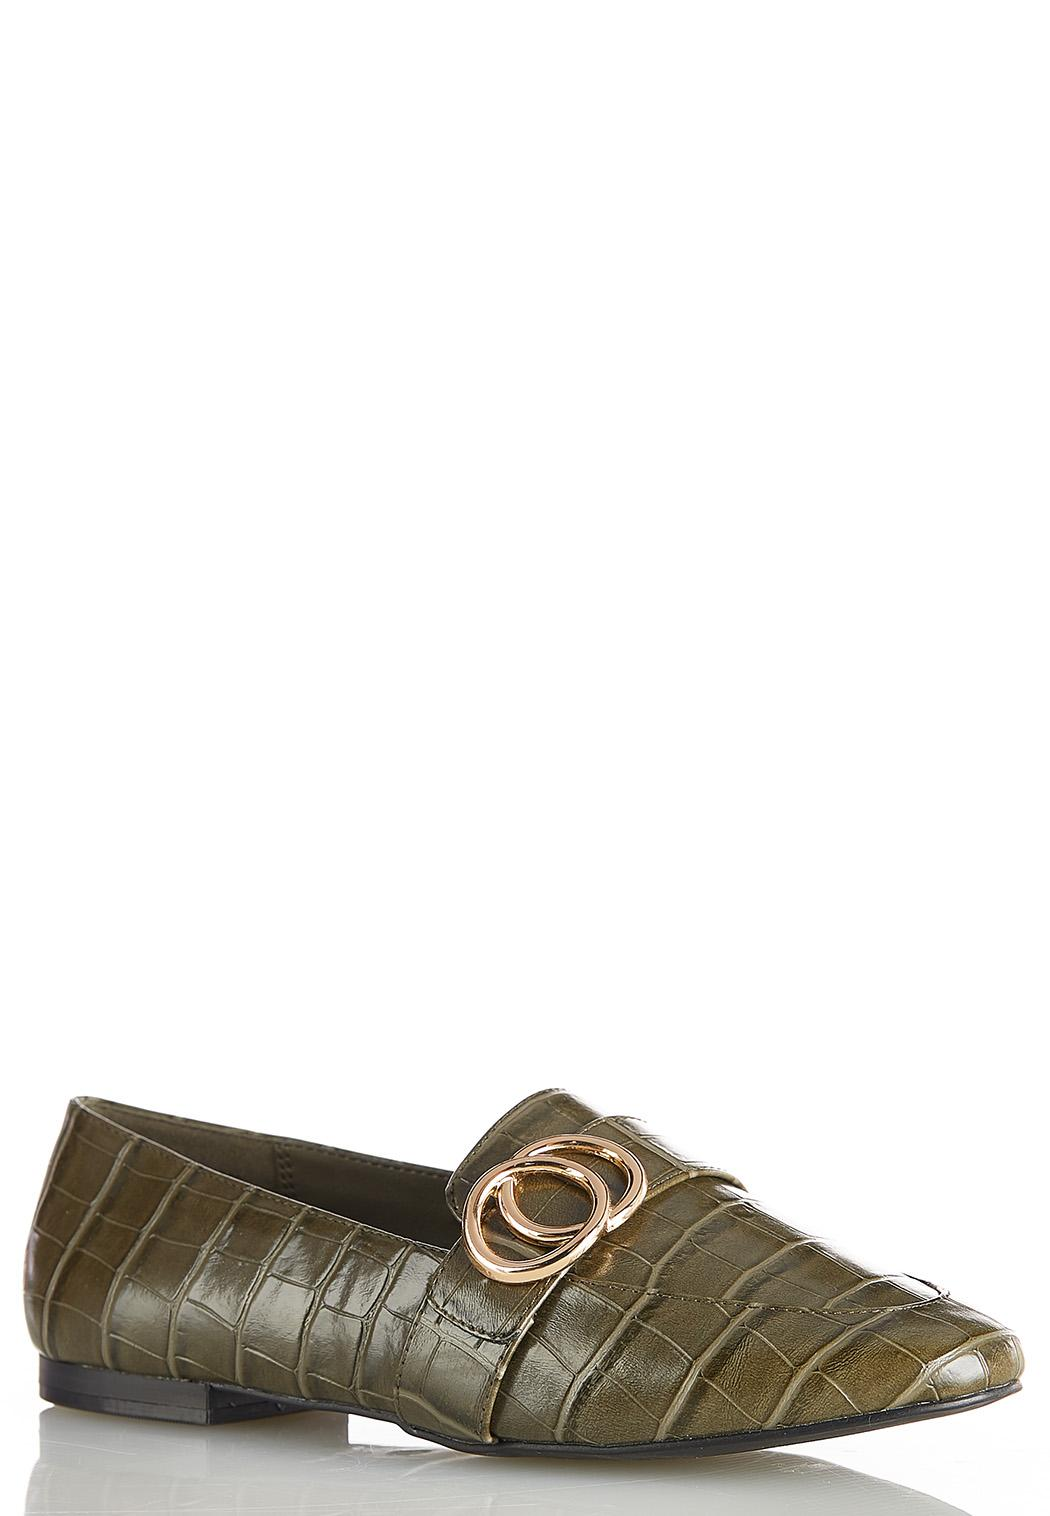 Metal Ring Croc Loafers